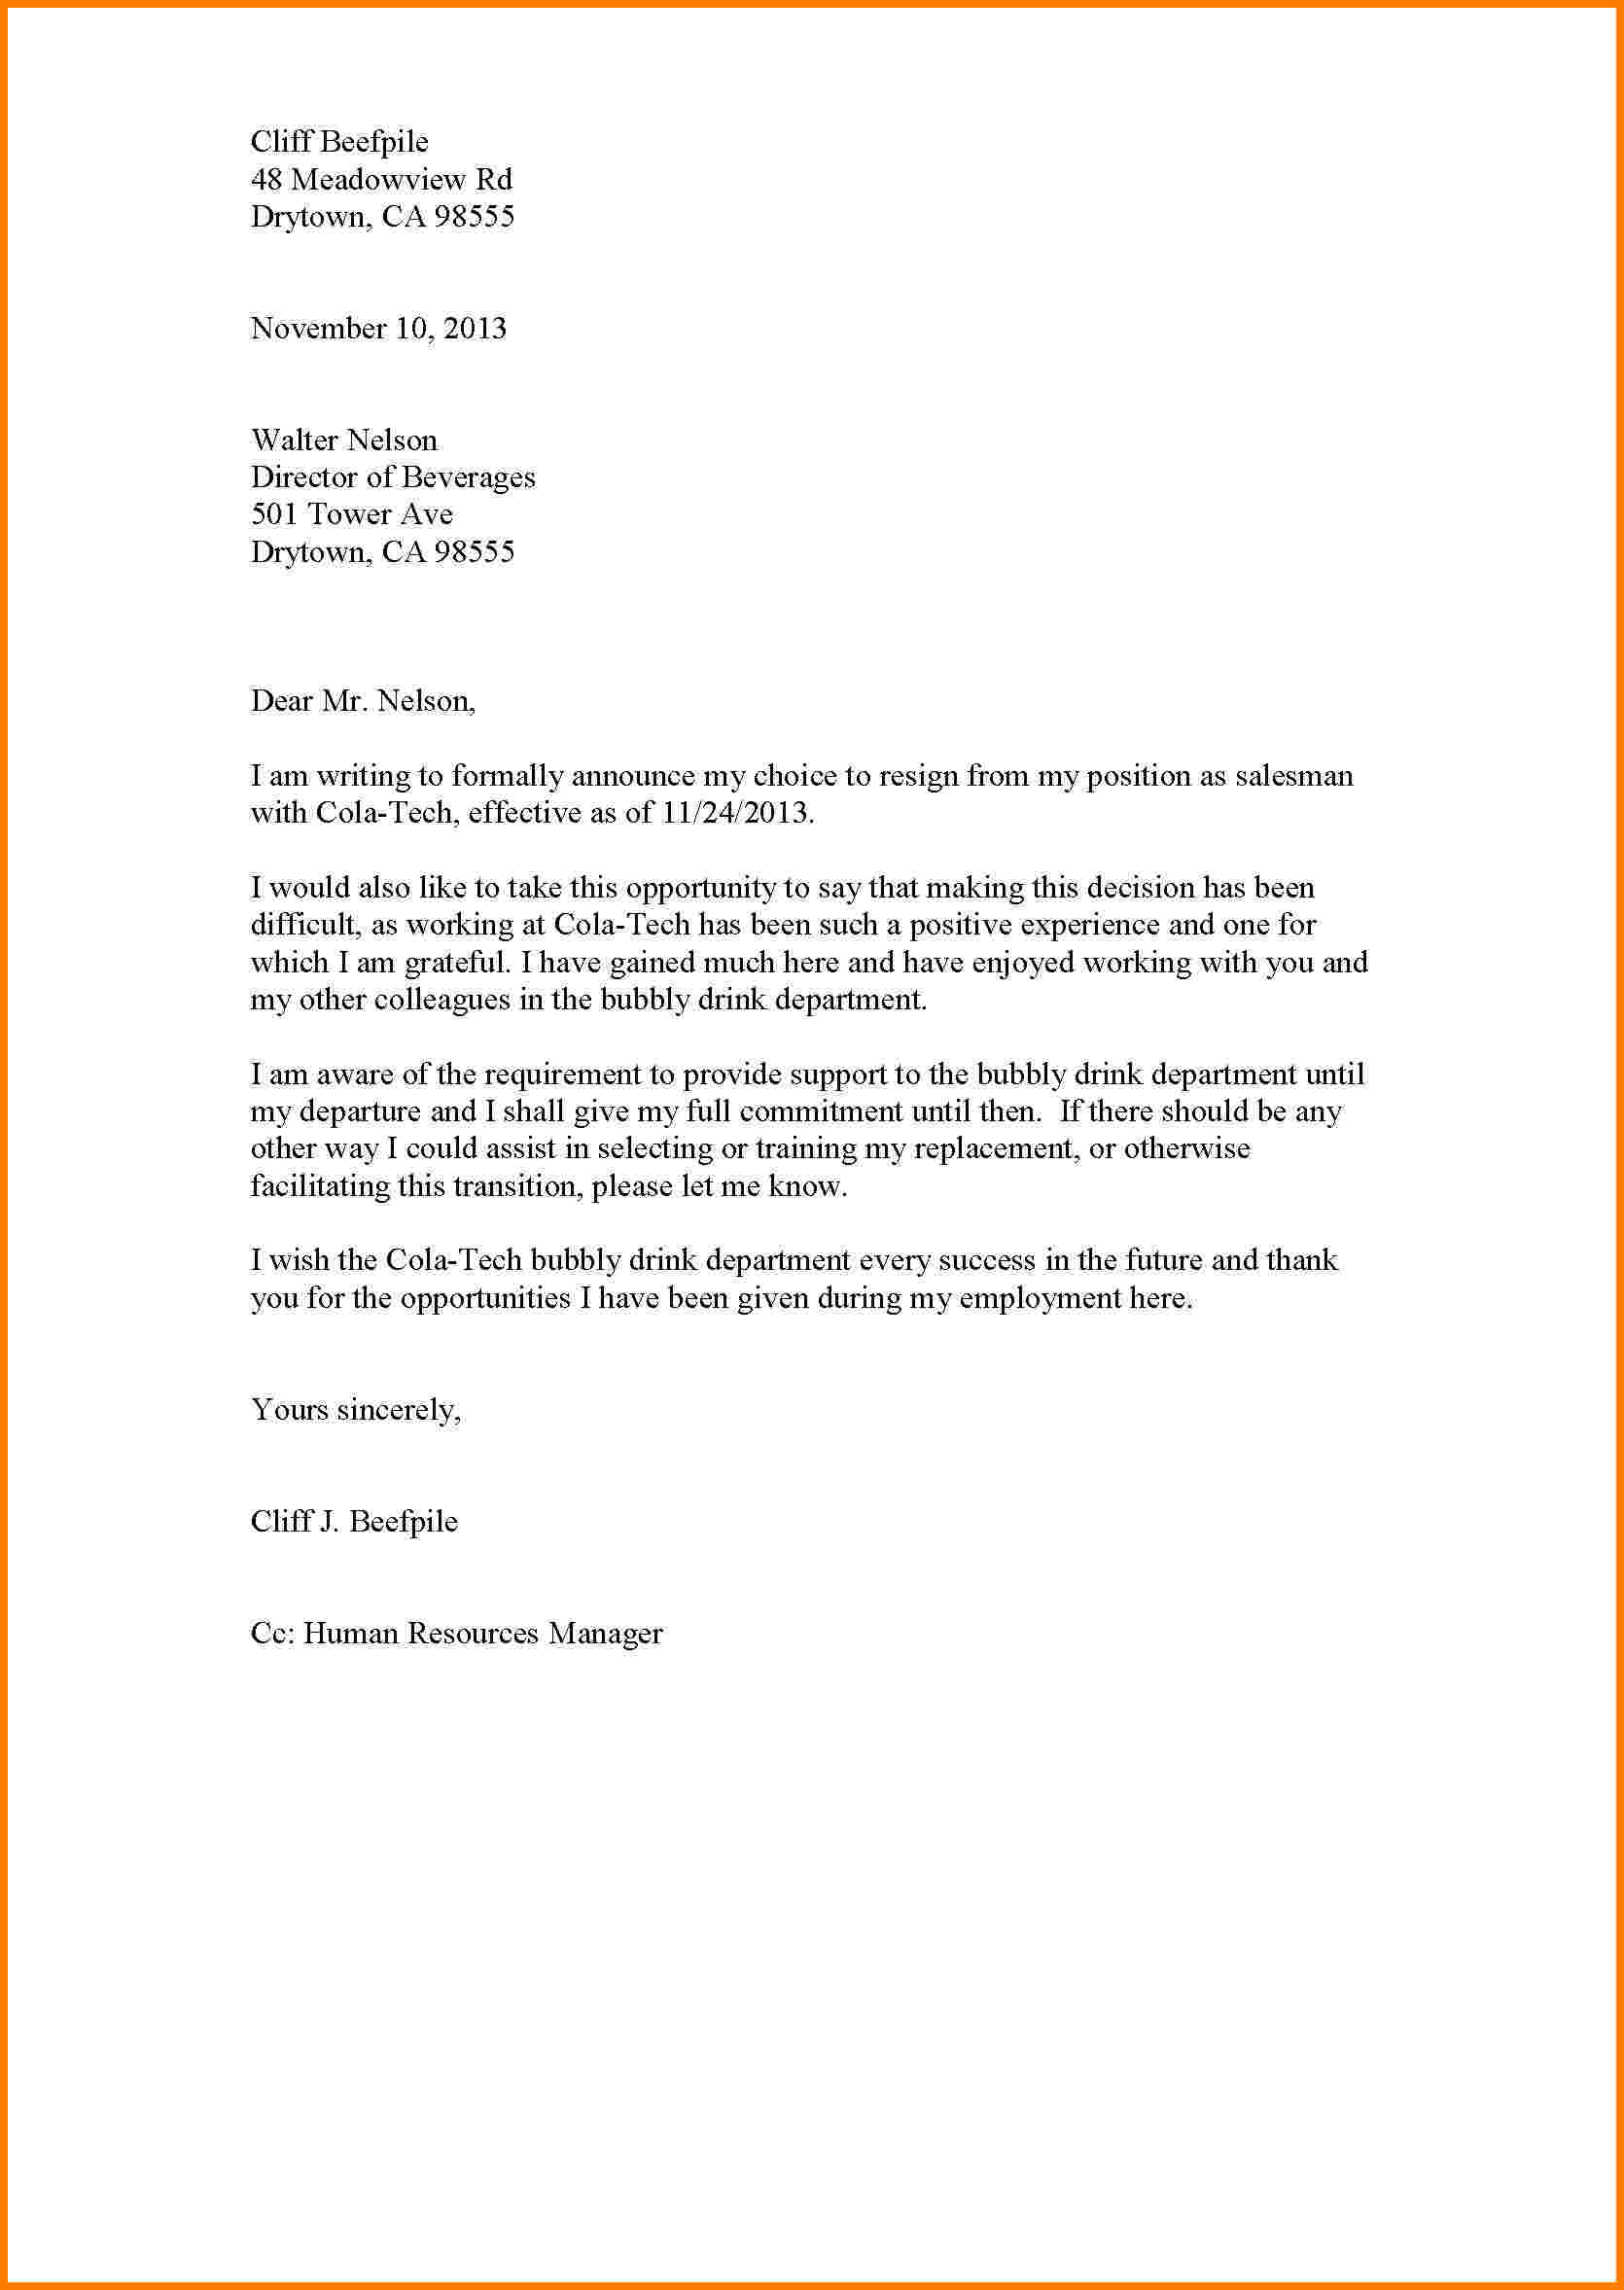 Resignation Letter Template Doc - Resignation Letter Template formal Sales Slip Teacher Free Image